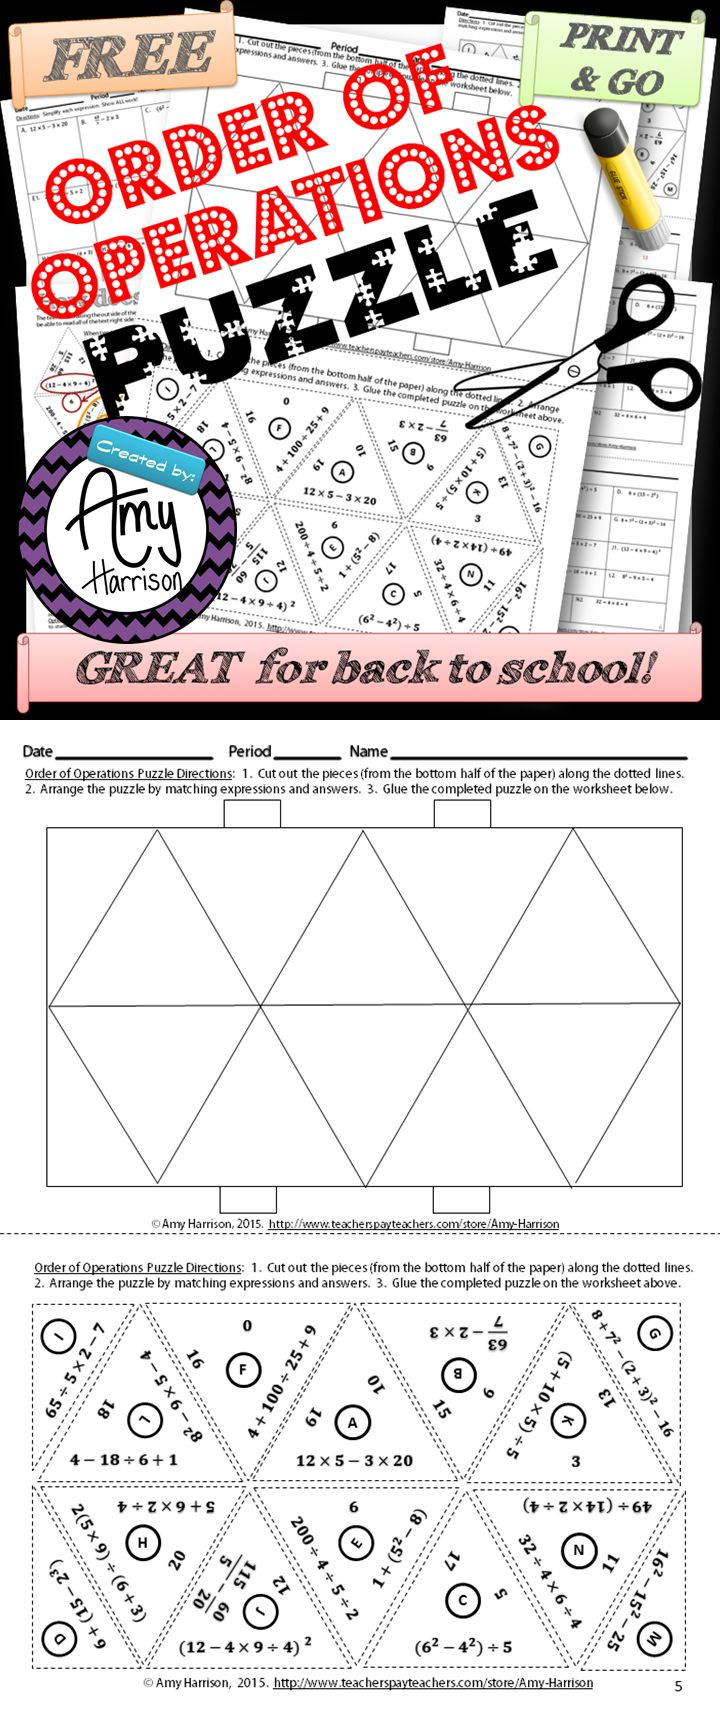 Try this FREE order of operations puzzle that is great for back to school in grades 5-8.